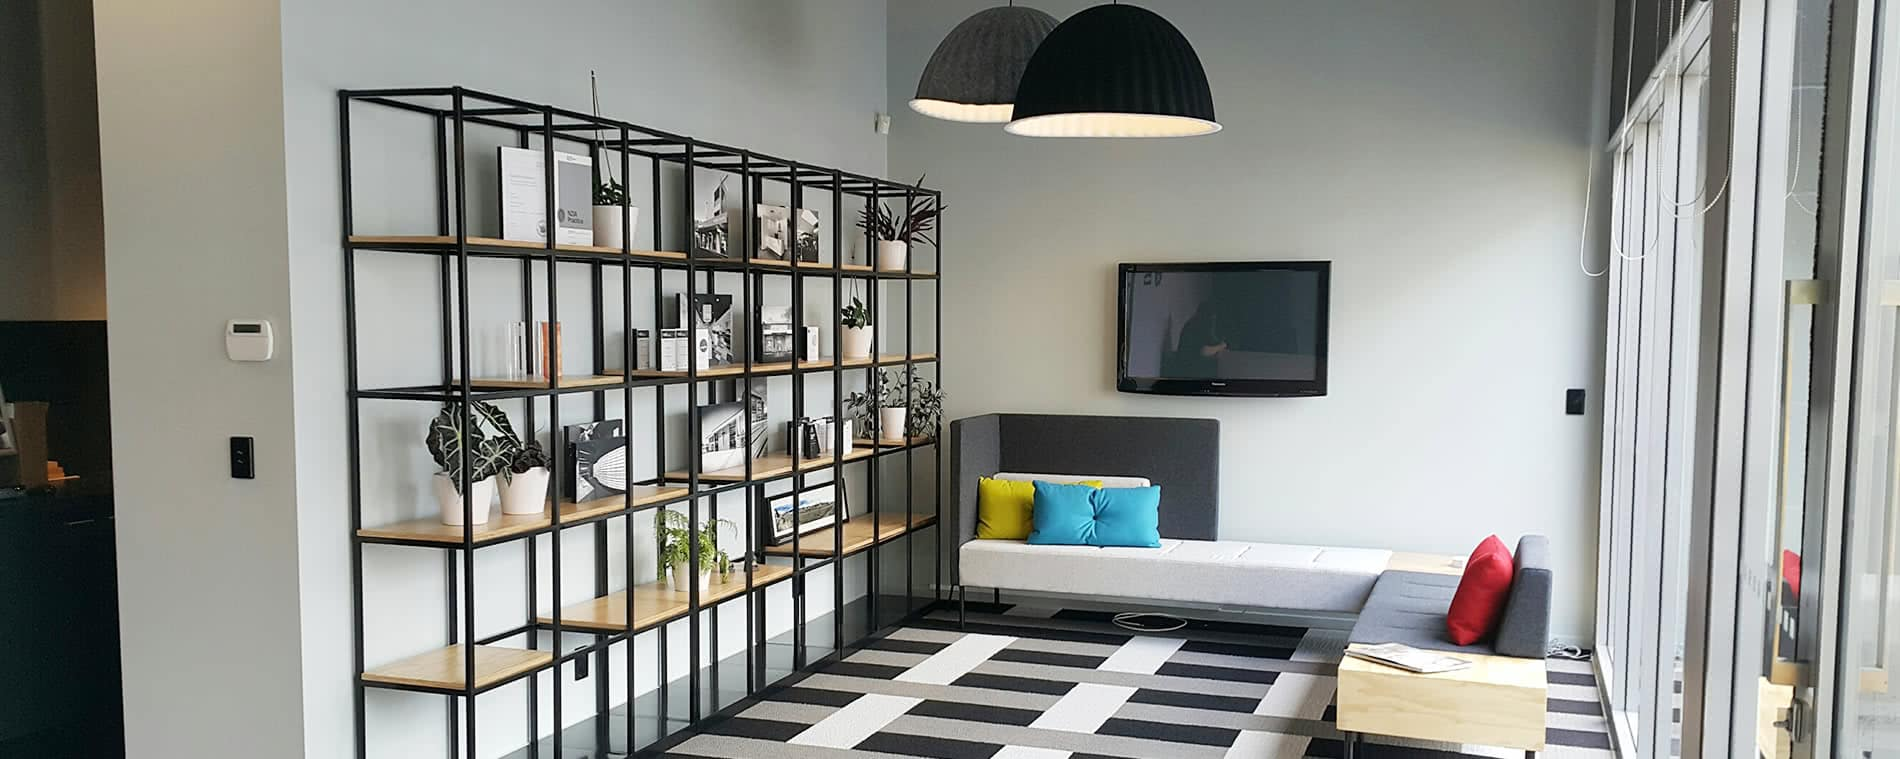 Unique and modern shelving